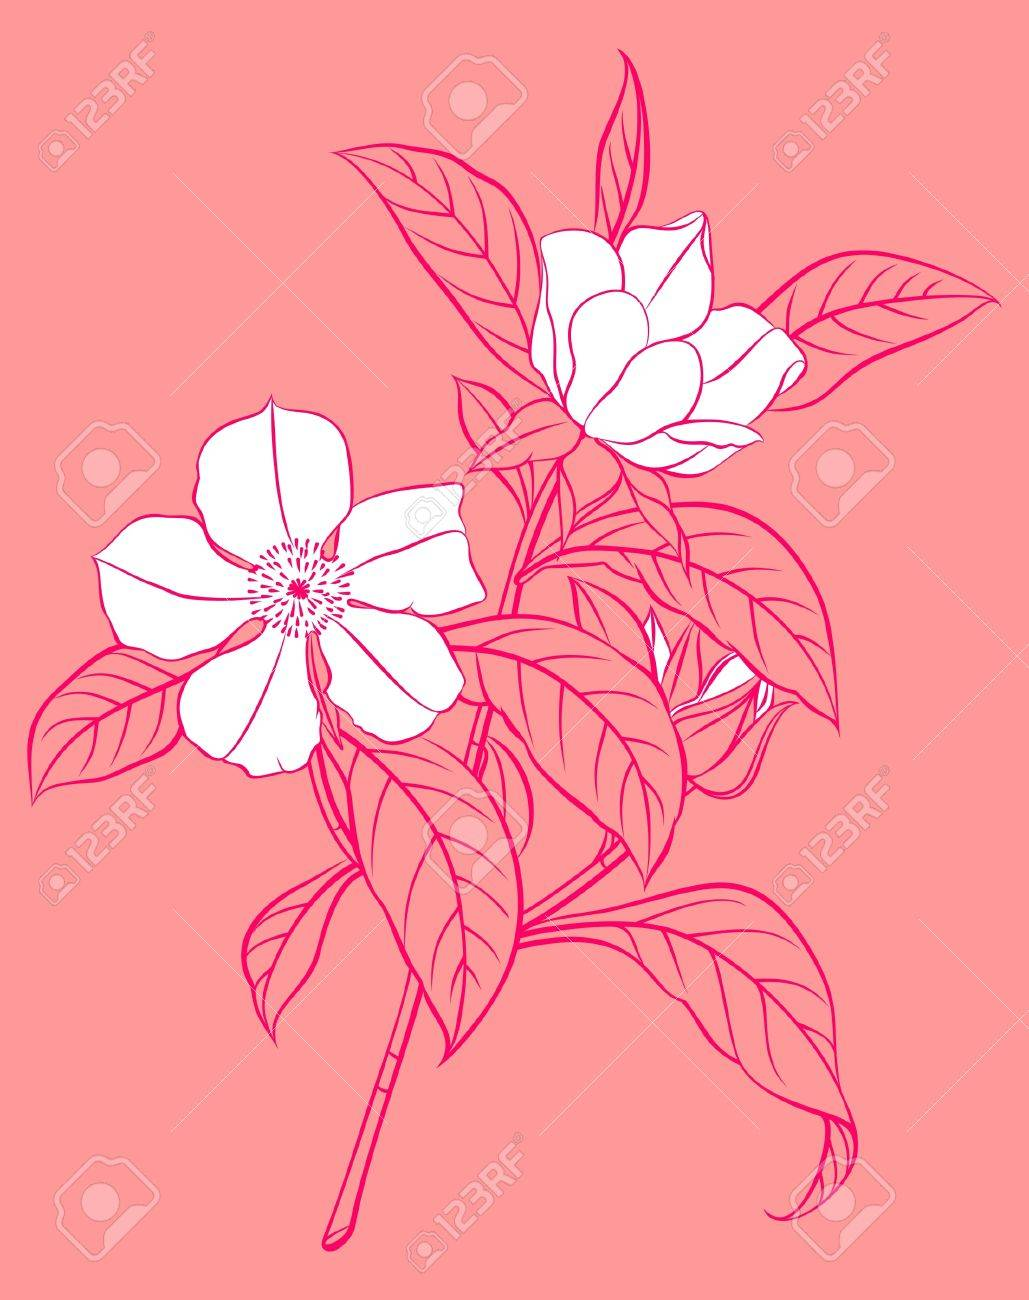 white flowering branch on pink background Stock Vector - 13143890